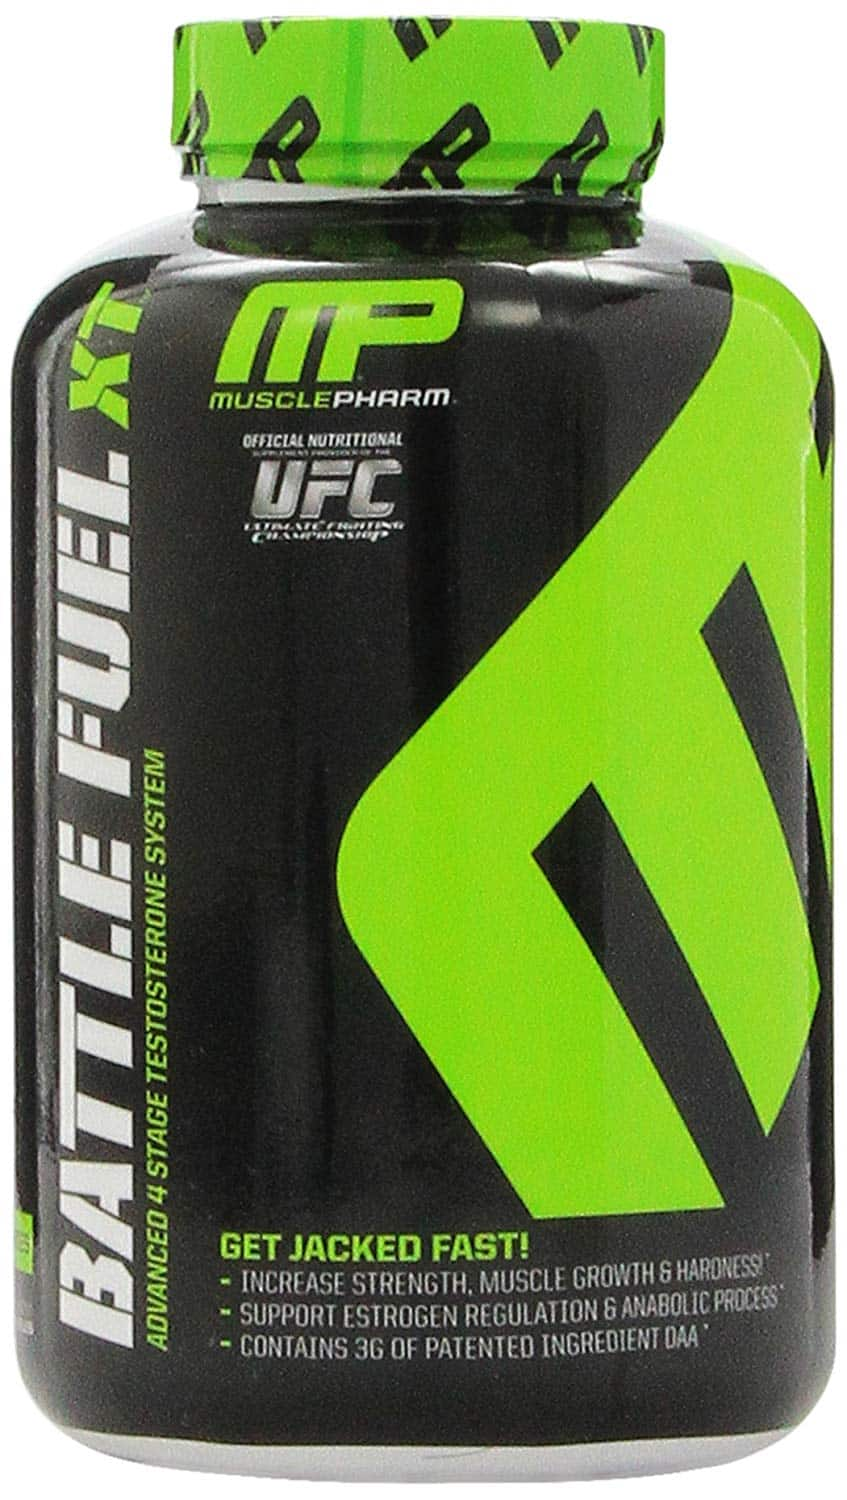 Battle Fuel XT testosterone booster from Muscle Pharm